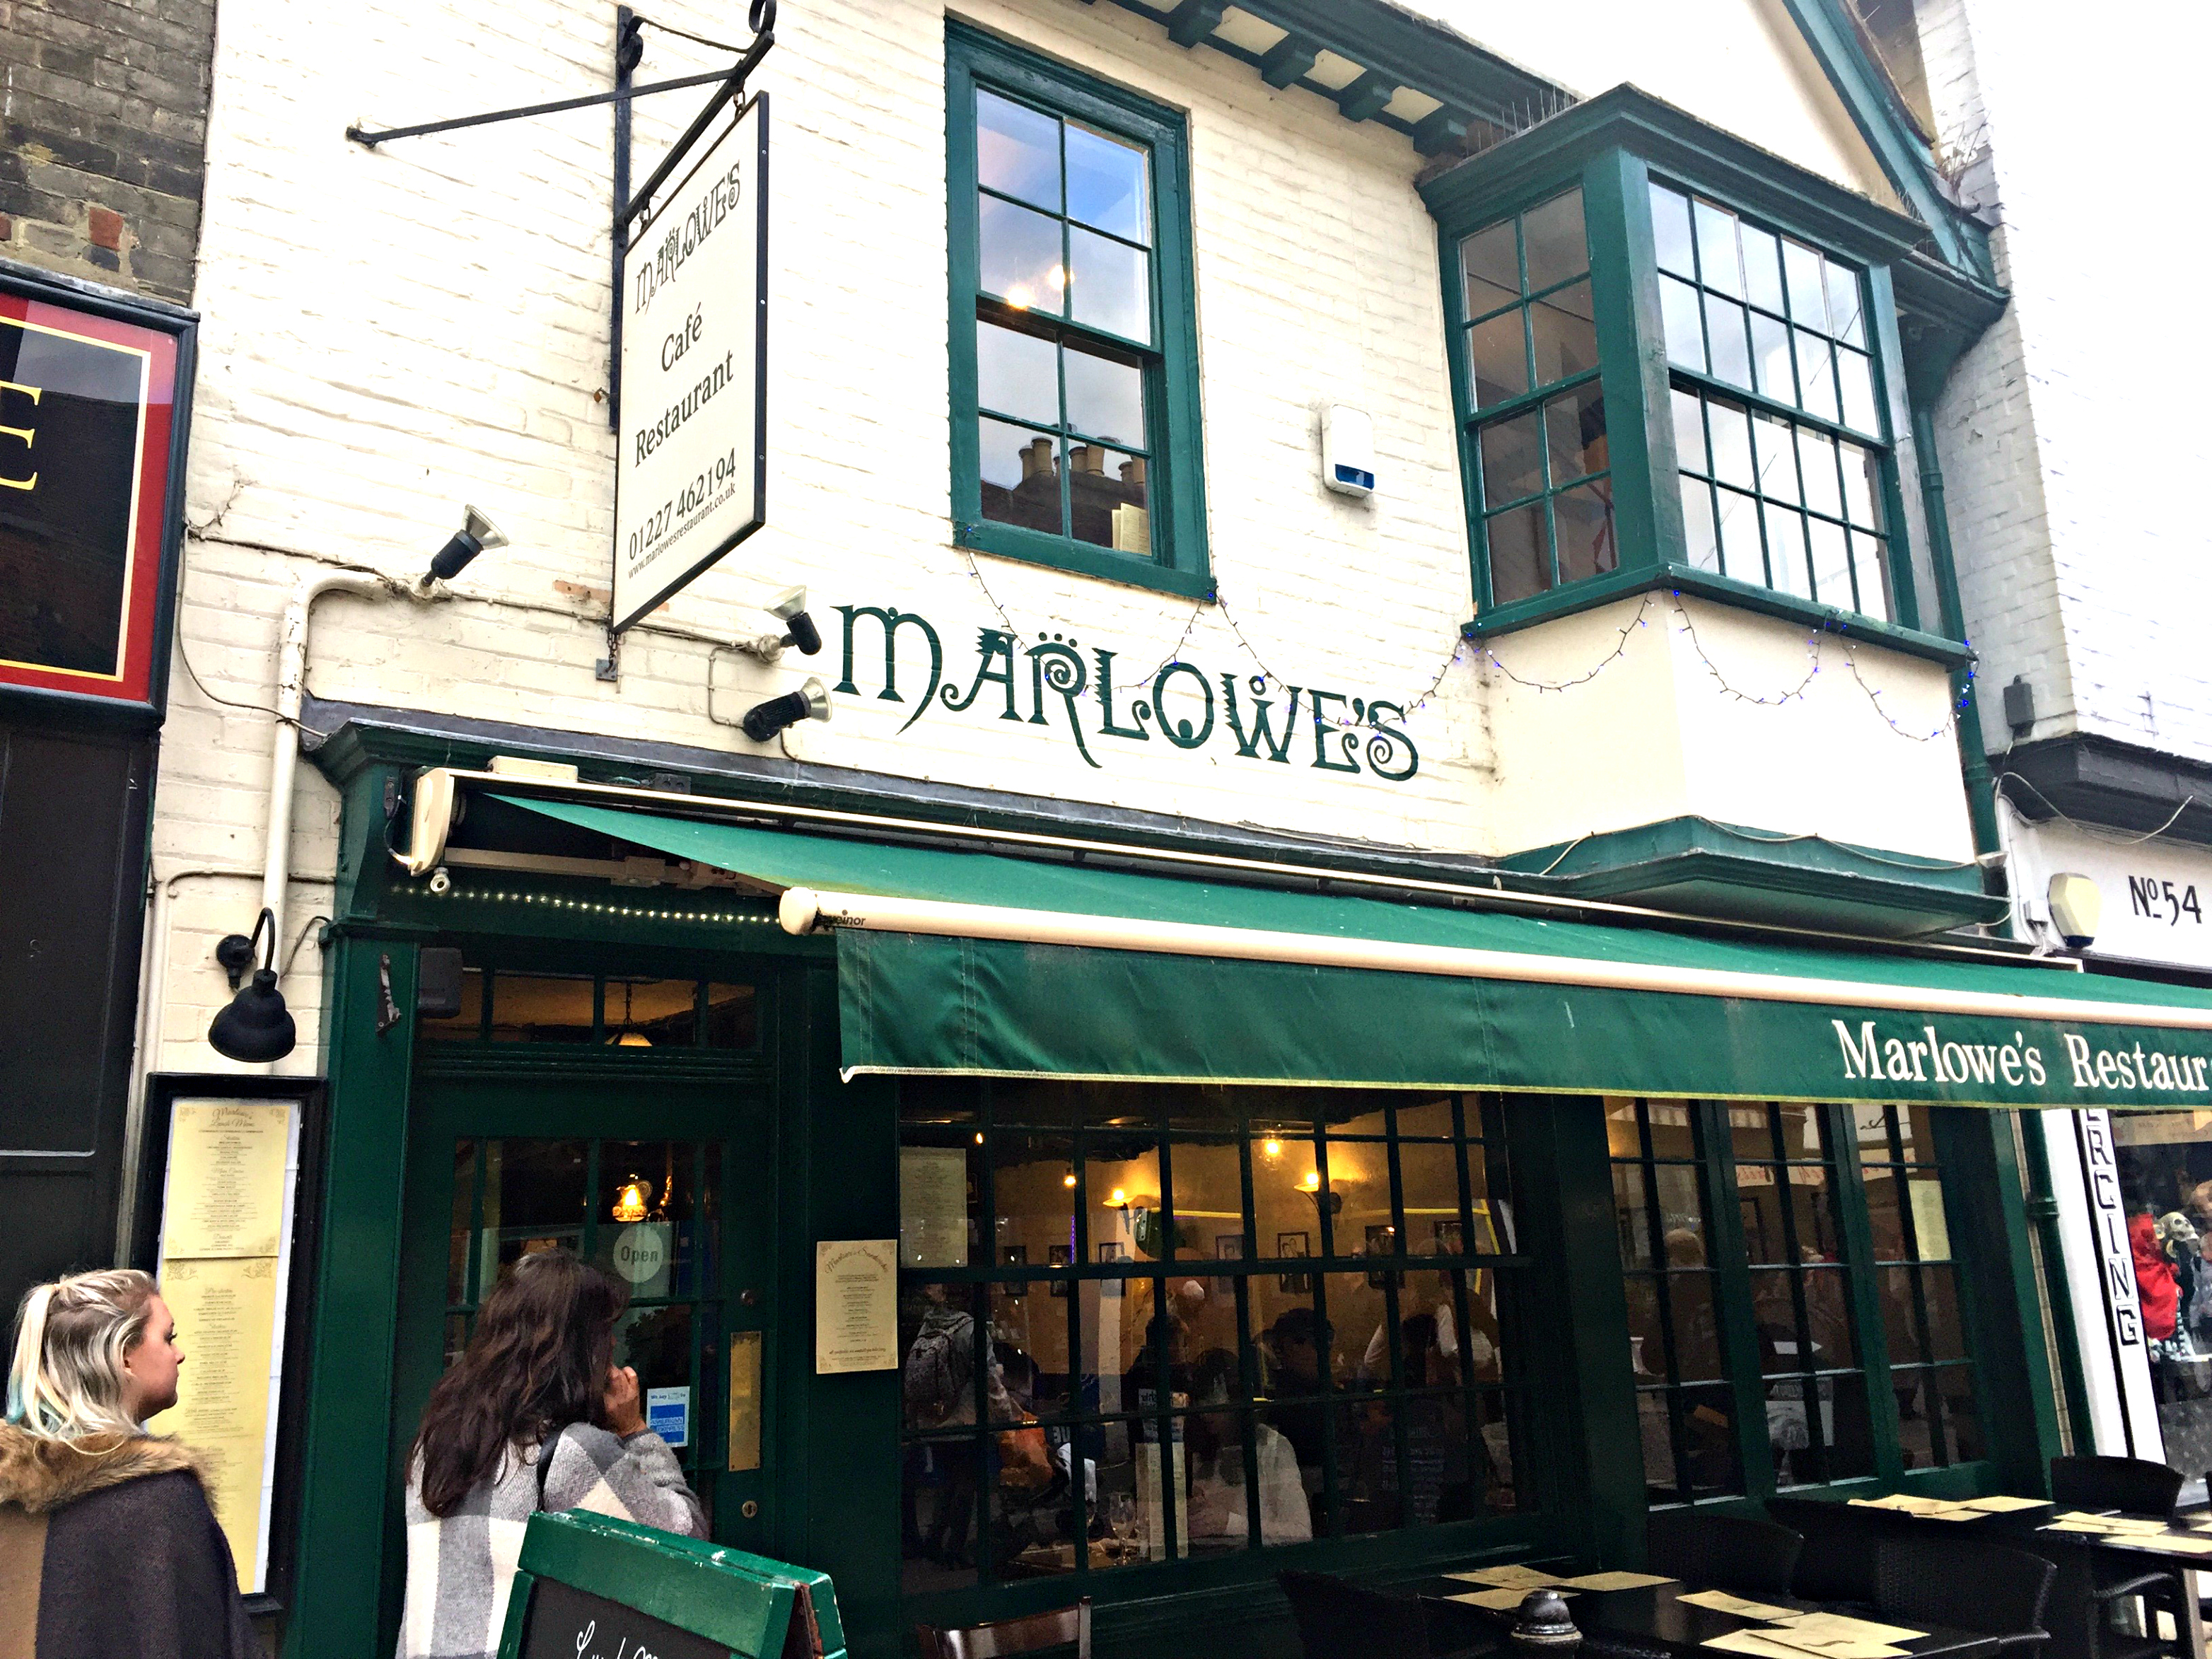 Restaurant Review - Marlowes 1